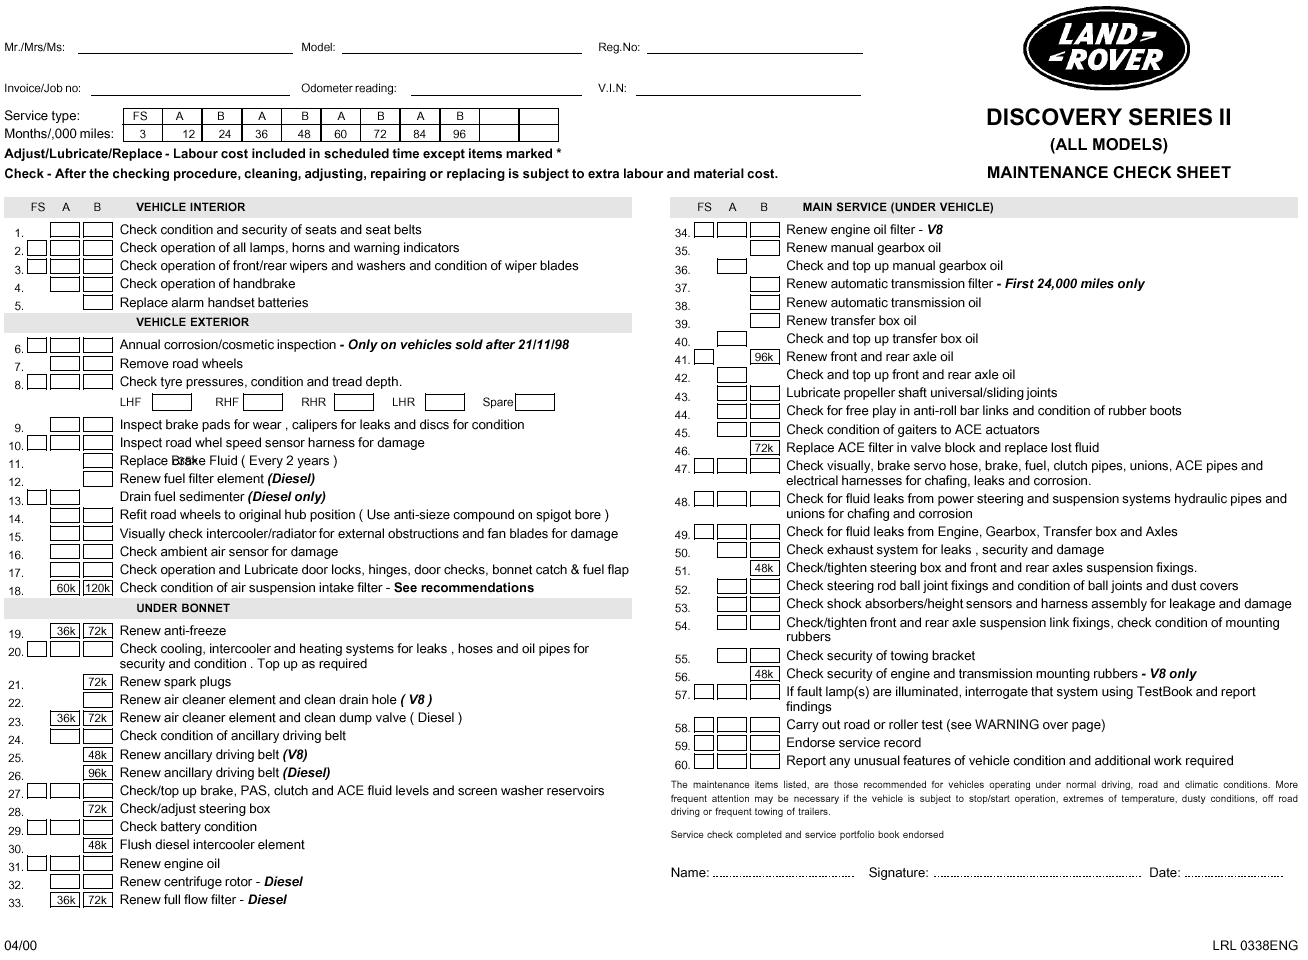 Car service schedule sheet checklist 15